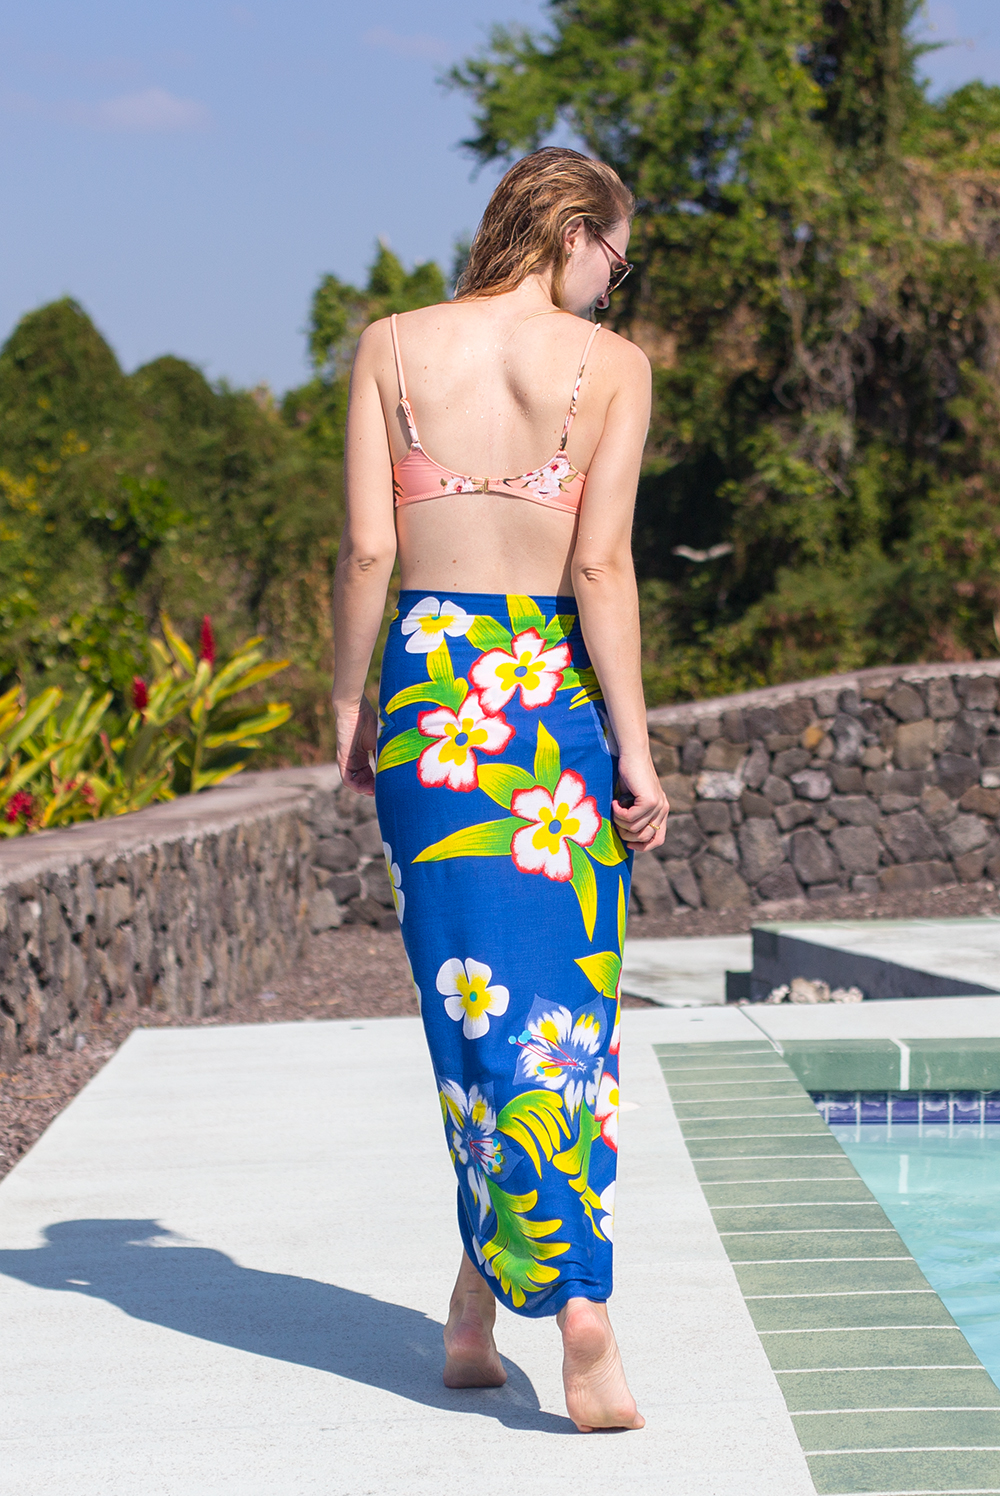 f518c03d7f131 With a refreshing juice or cocktail in hand sun basking by the pool, you'll  need the perfect sarong style to cover up, keep yourself protected from the  sun ...